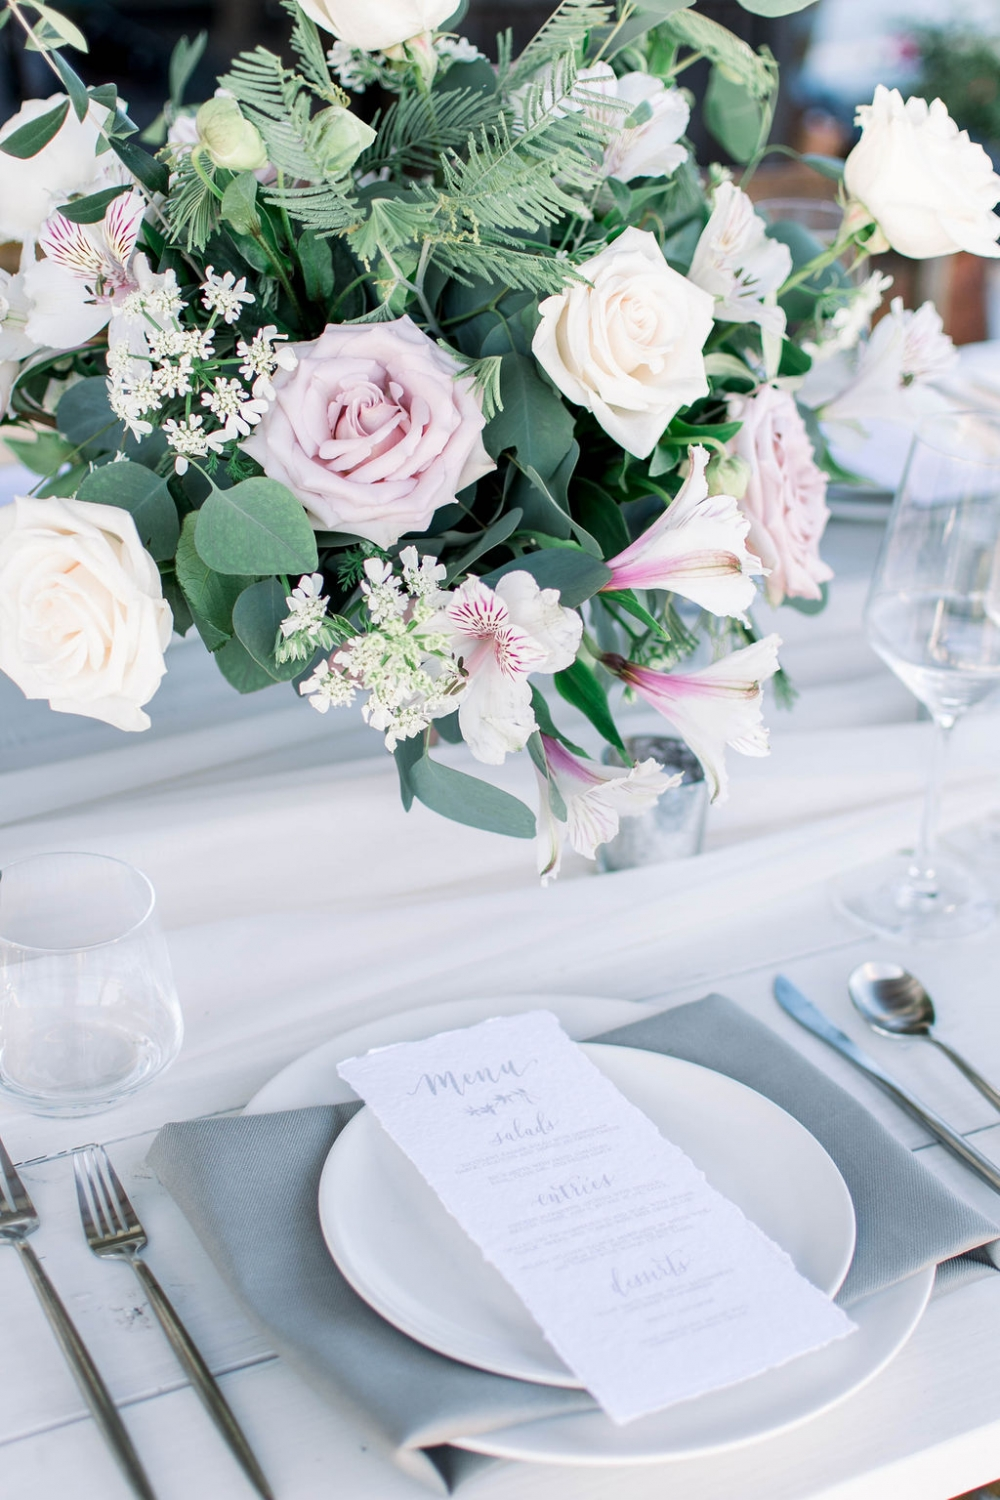 wedding table place setting with a grey napkin.